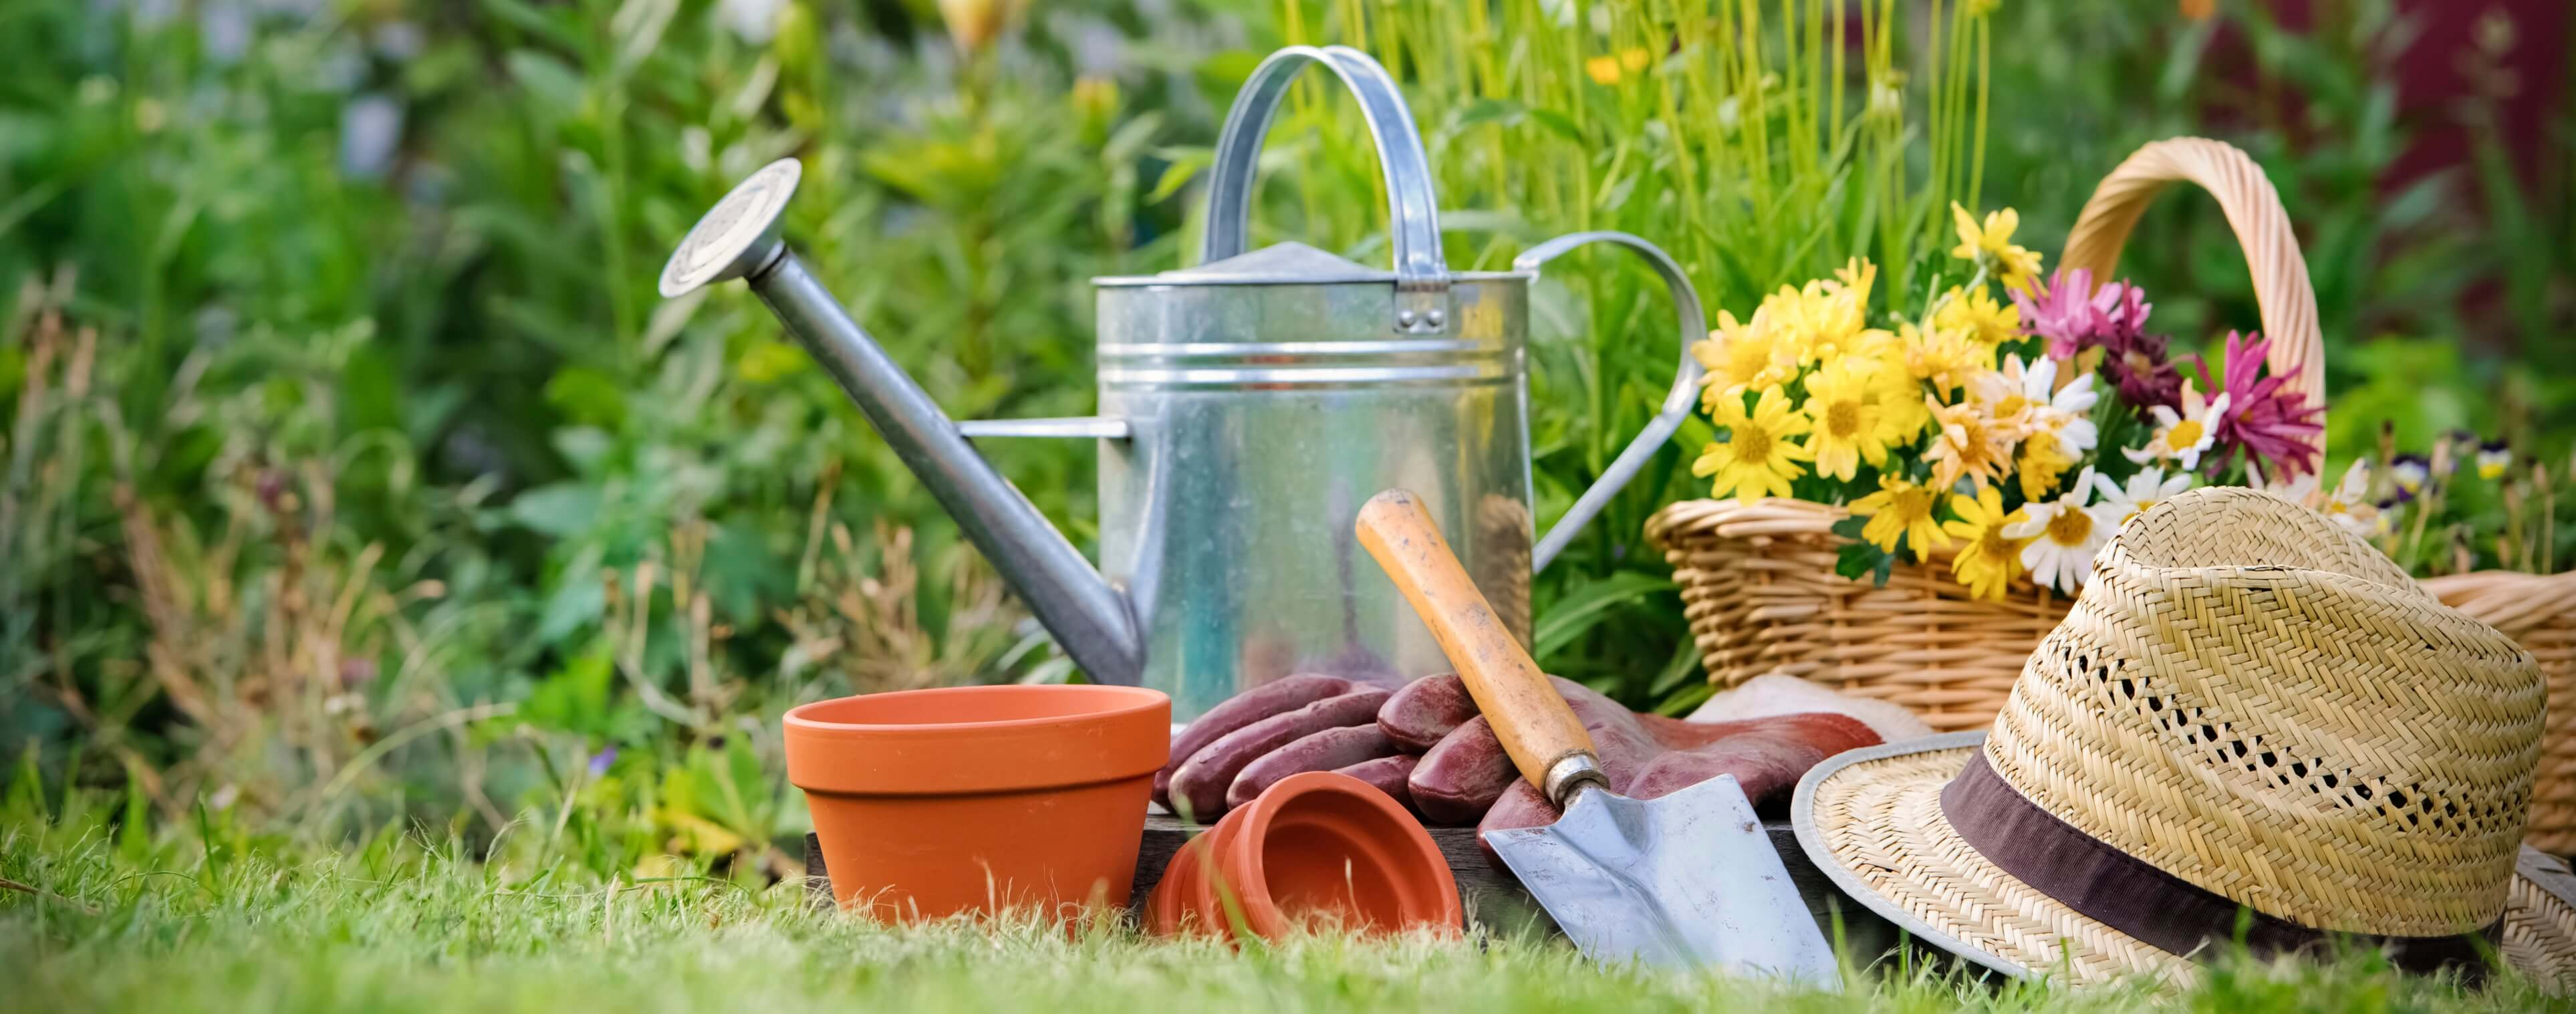 gardening products private label products for small business